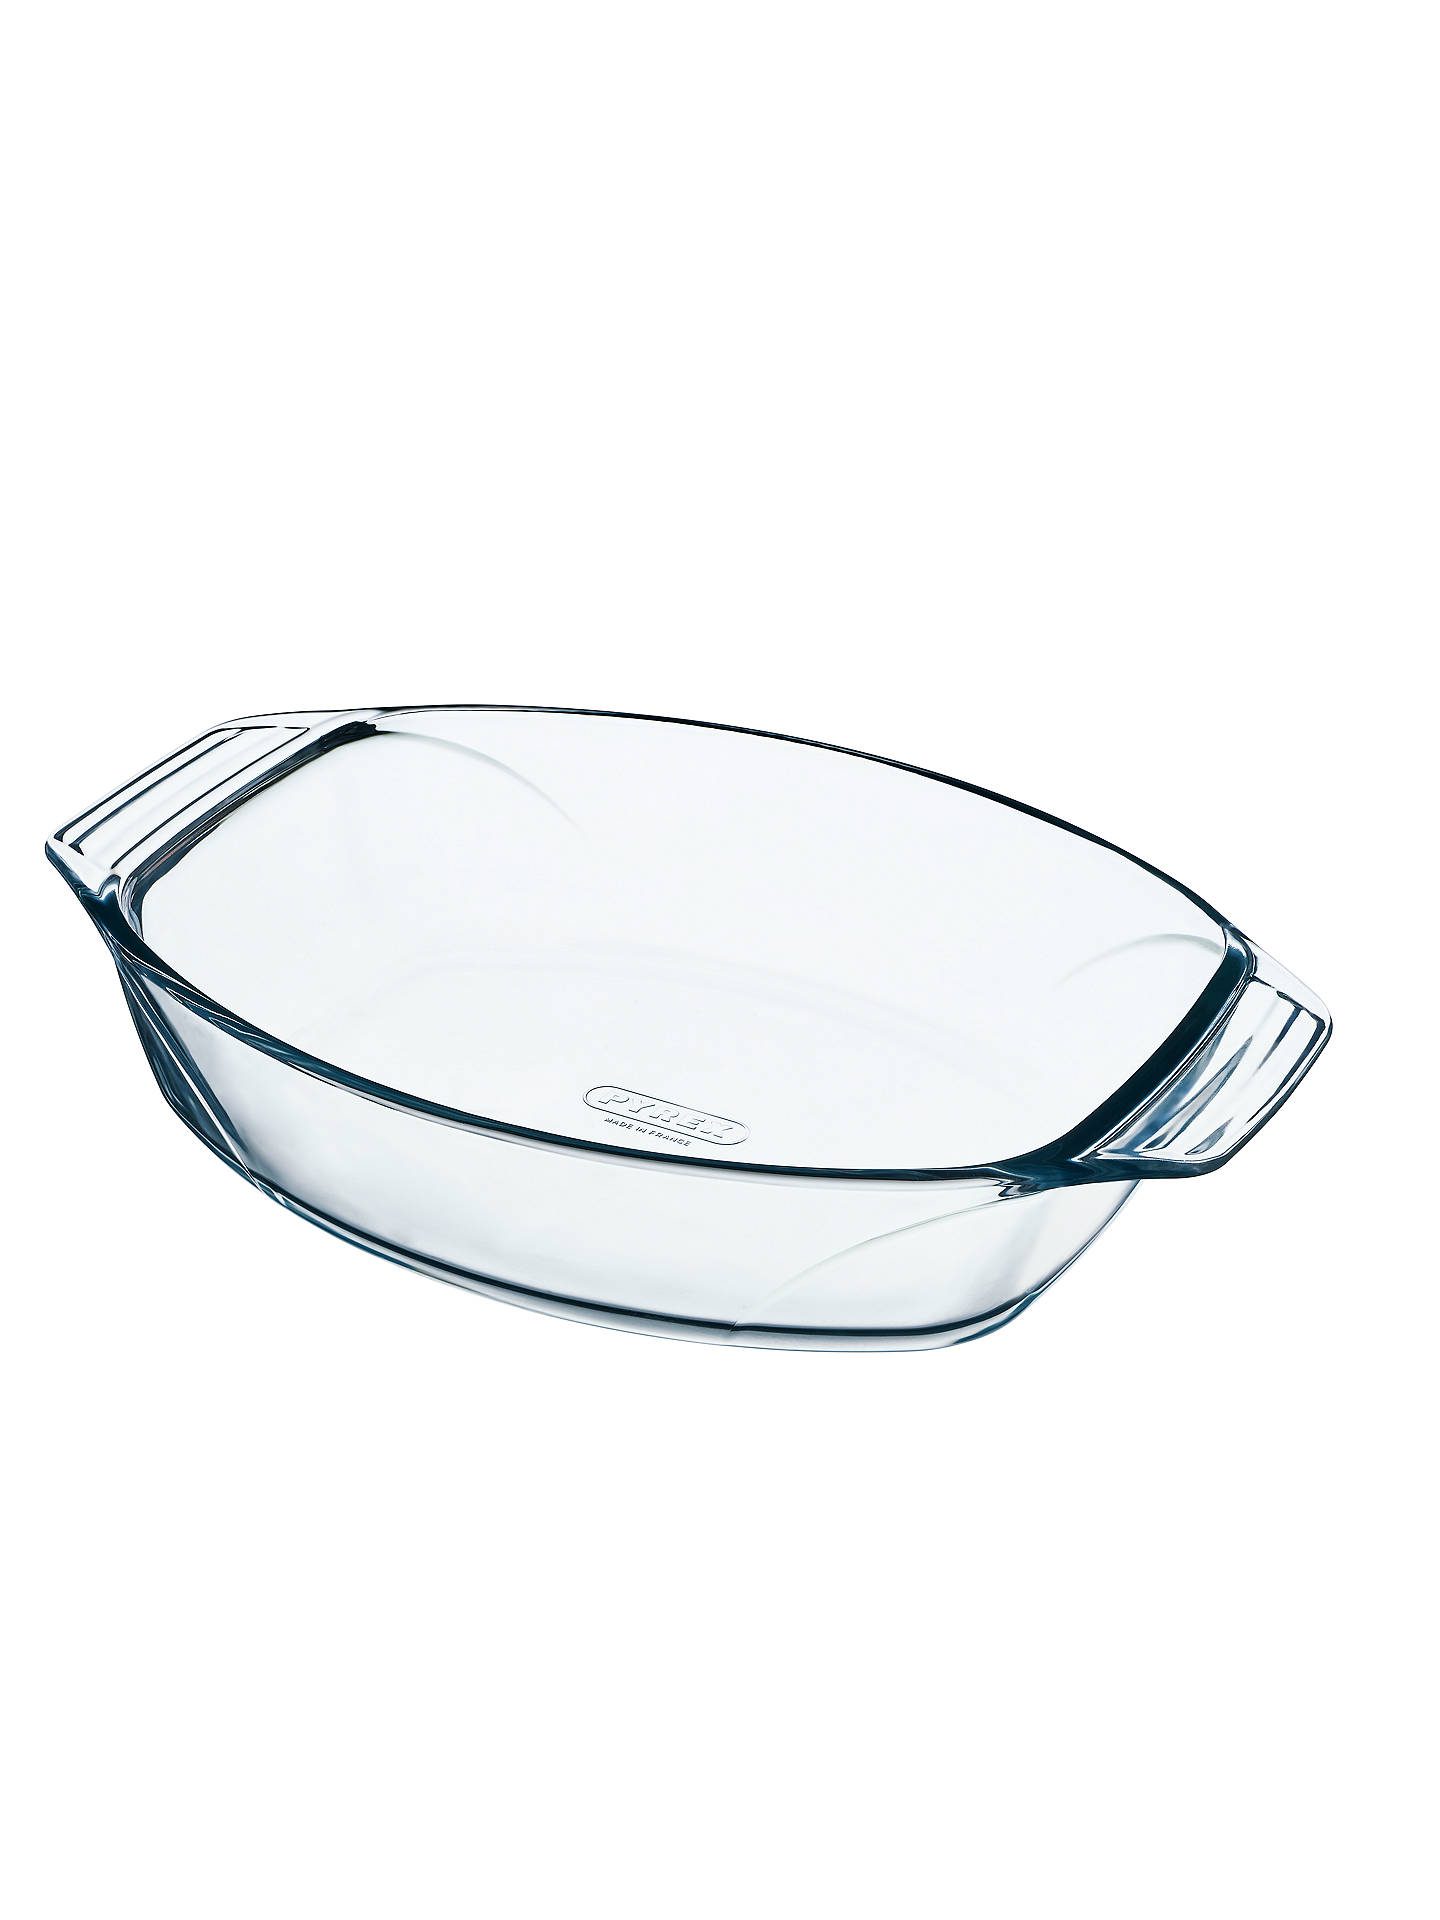 BuyPyrex Optimum Glass Roaster Oven Dish, L30 x W21cm Online at johnlewis.com